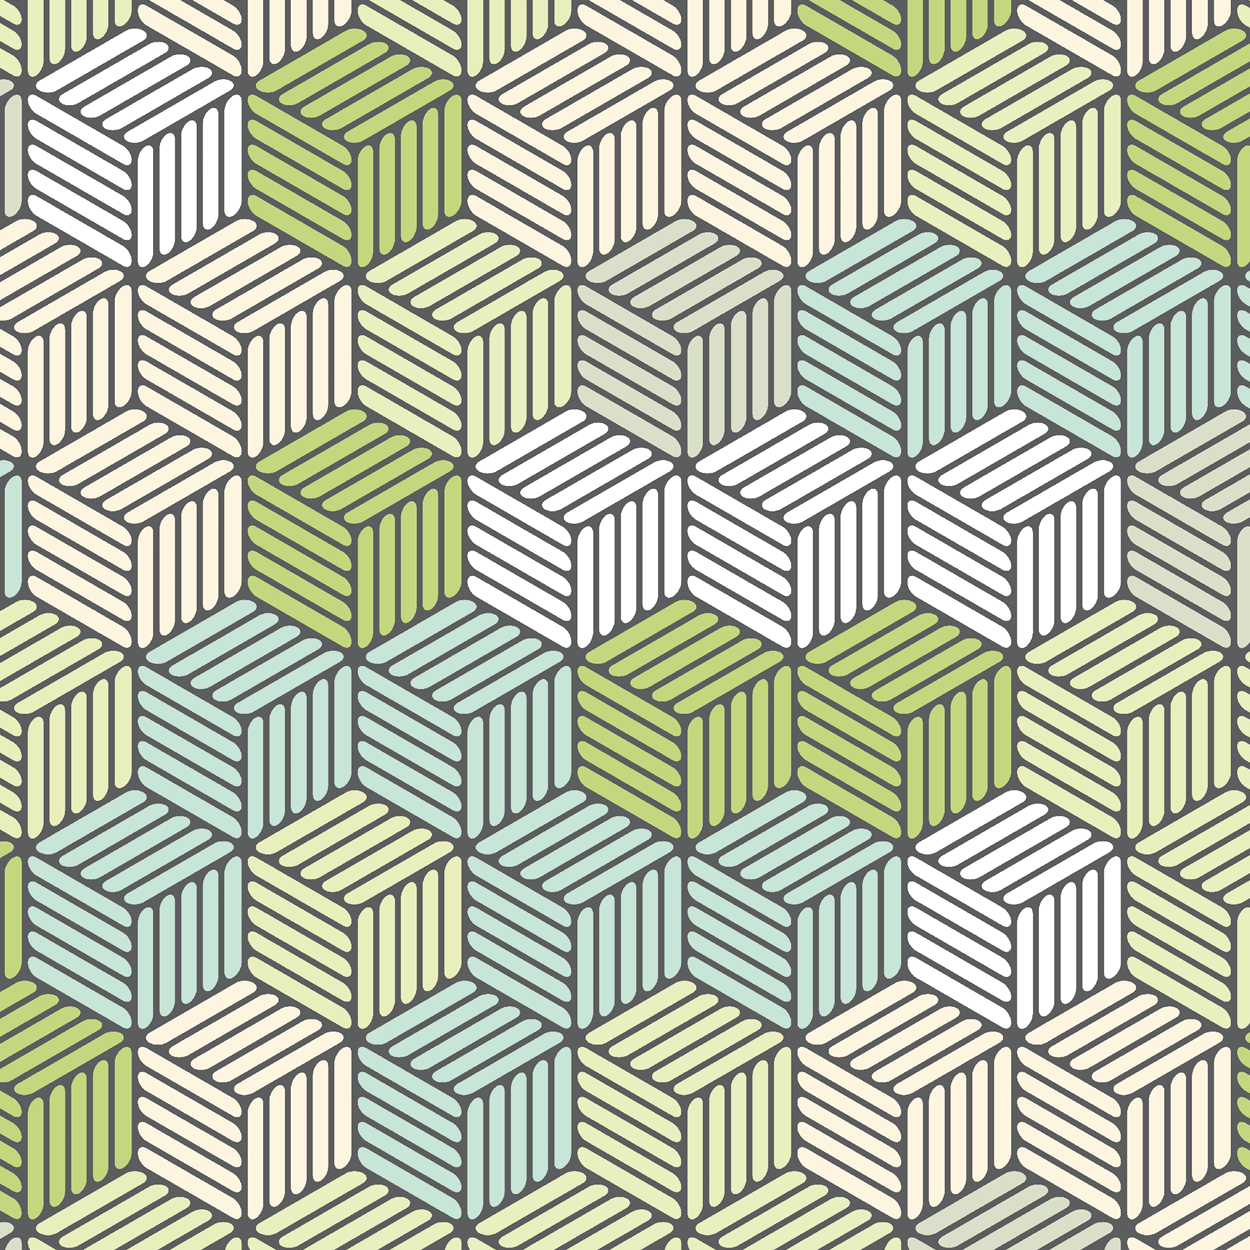 Isometric Hashed Cube 7